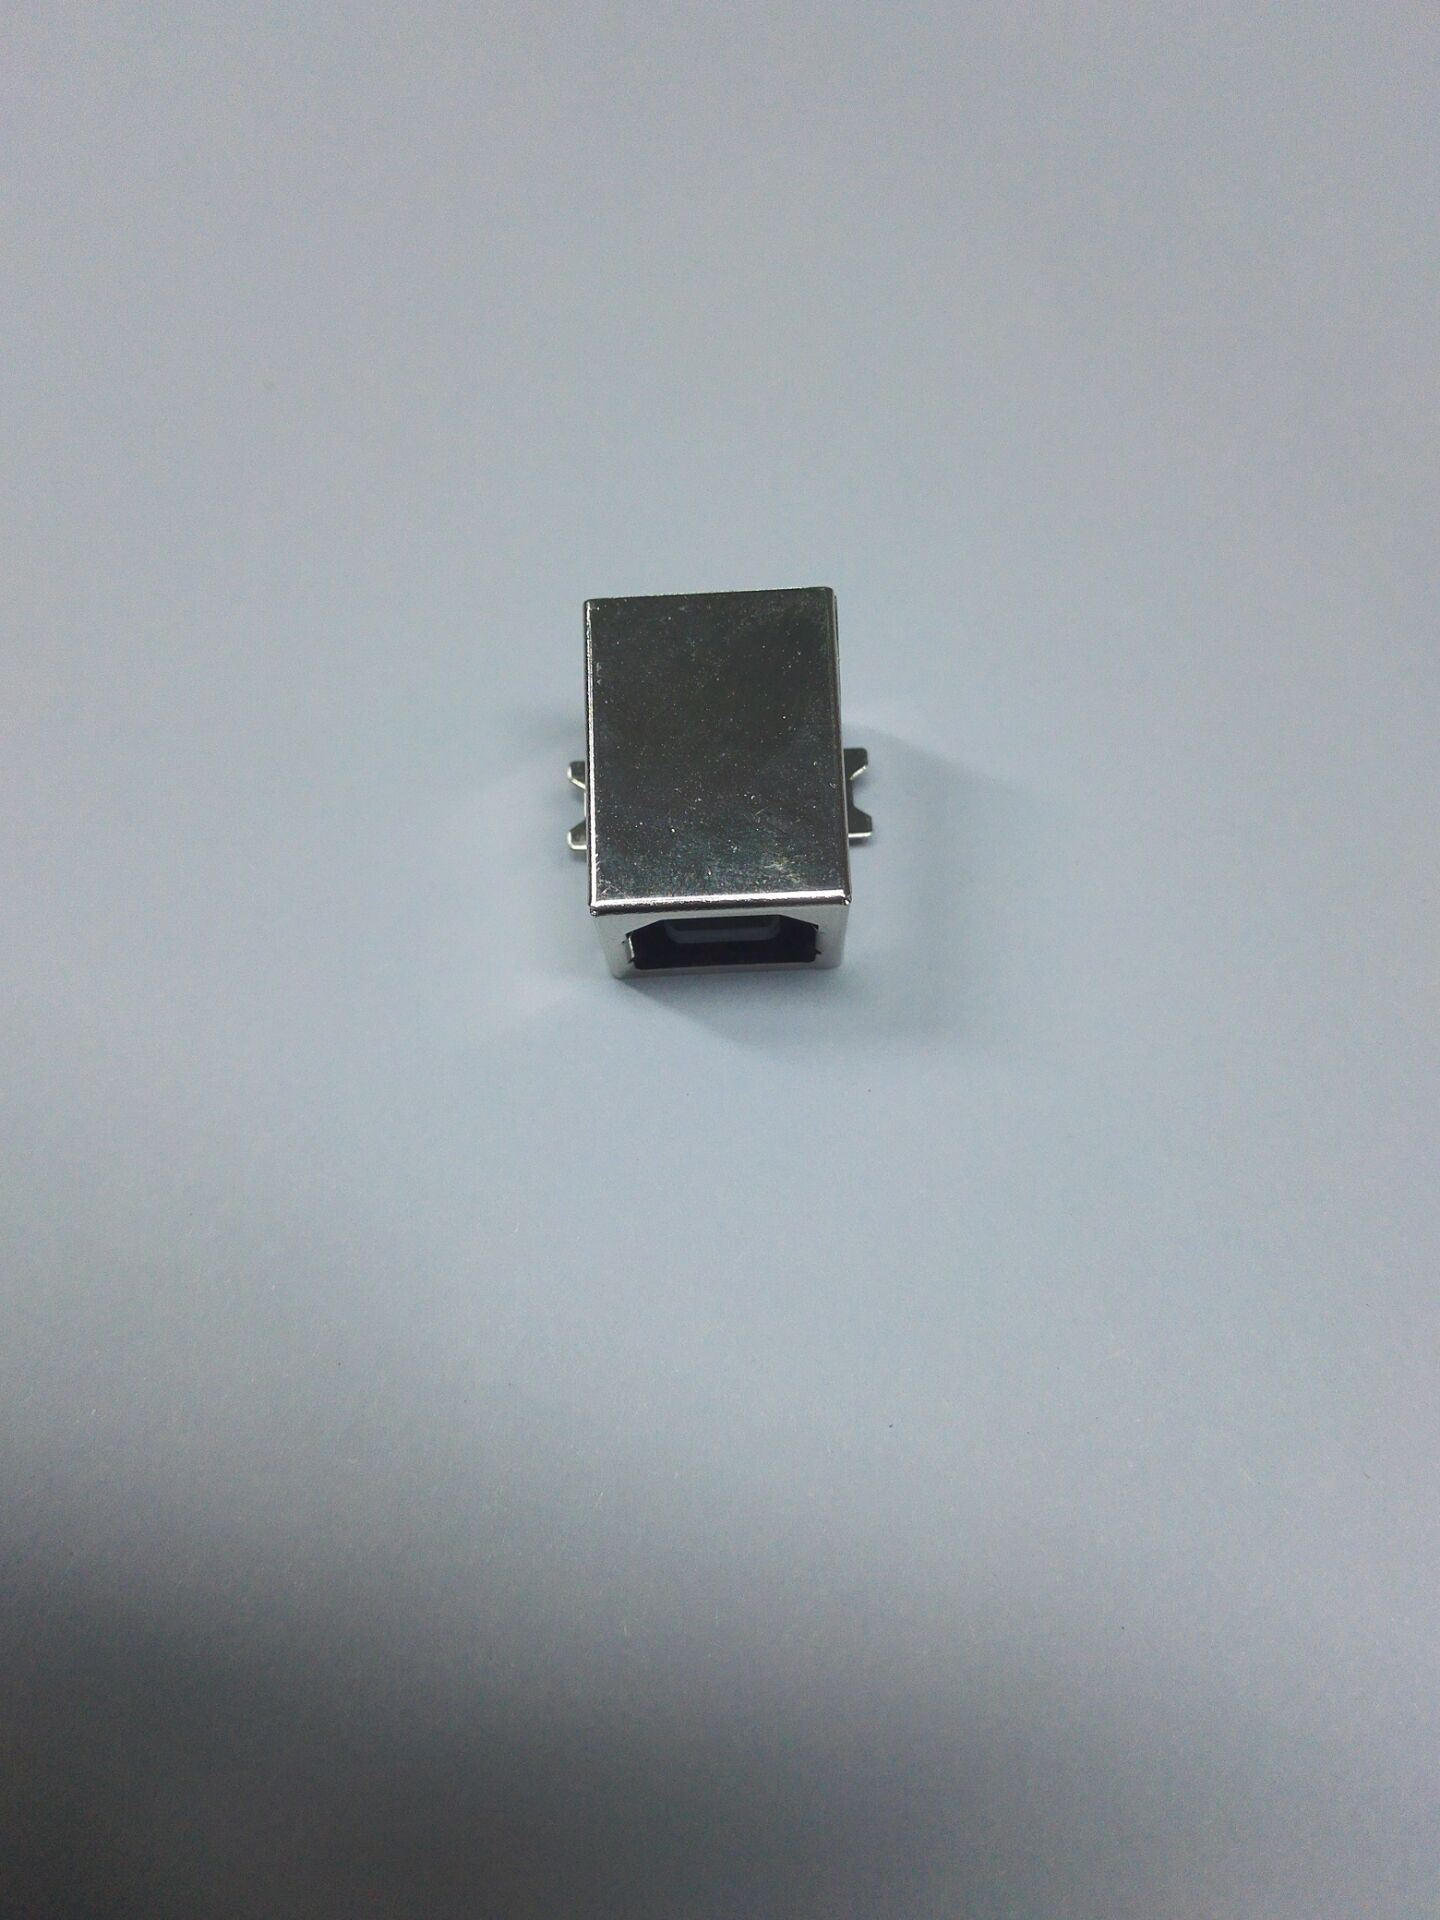 USB B Female Connector, SMT Version, LCP Material 4p